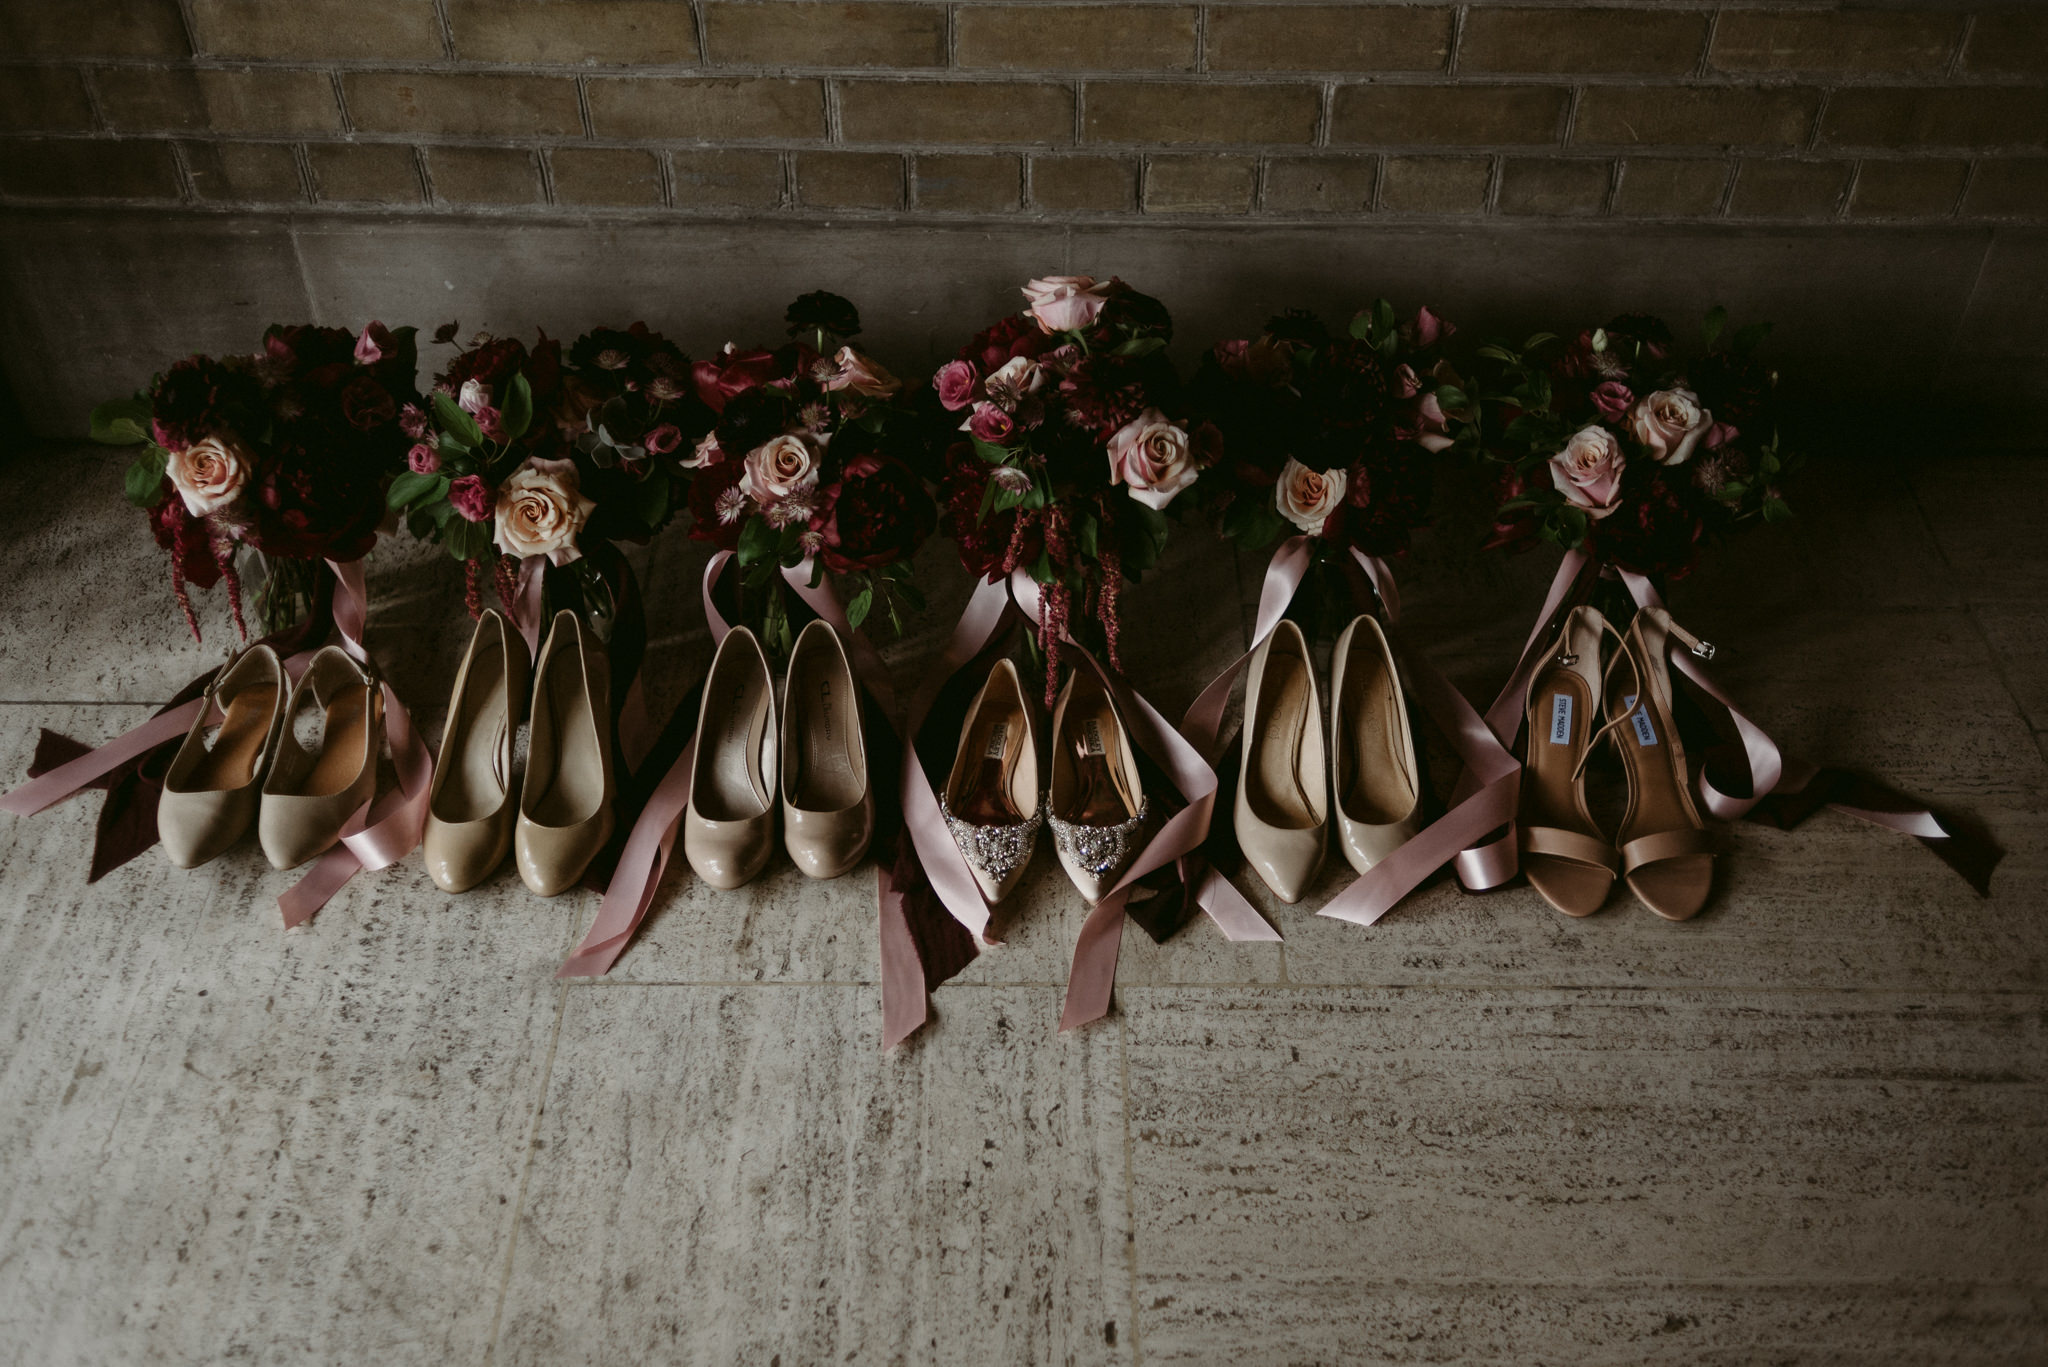 bridesmaids shoes and bouquets on the floor